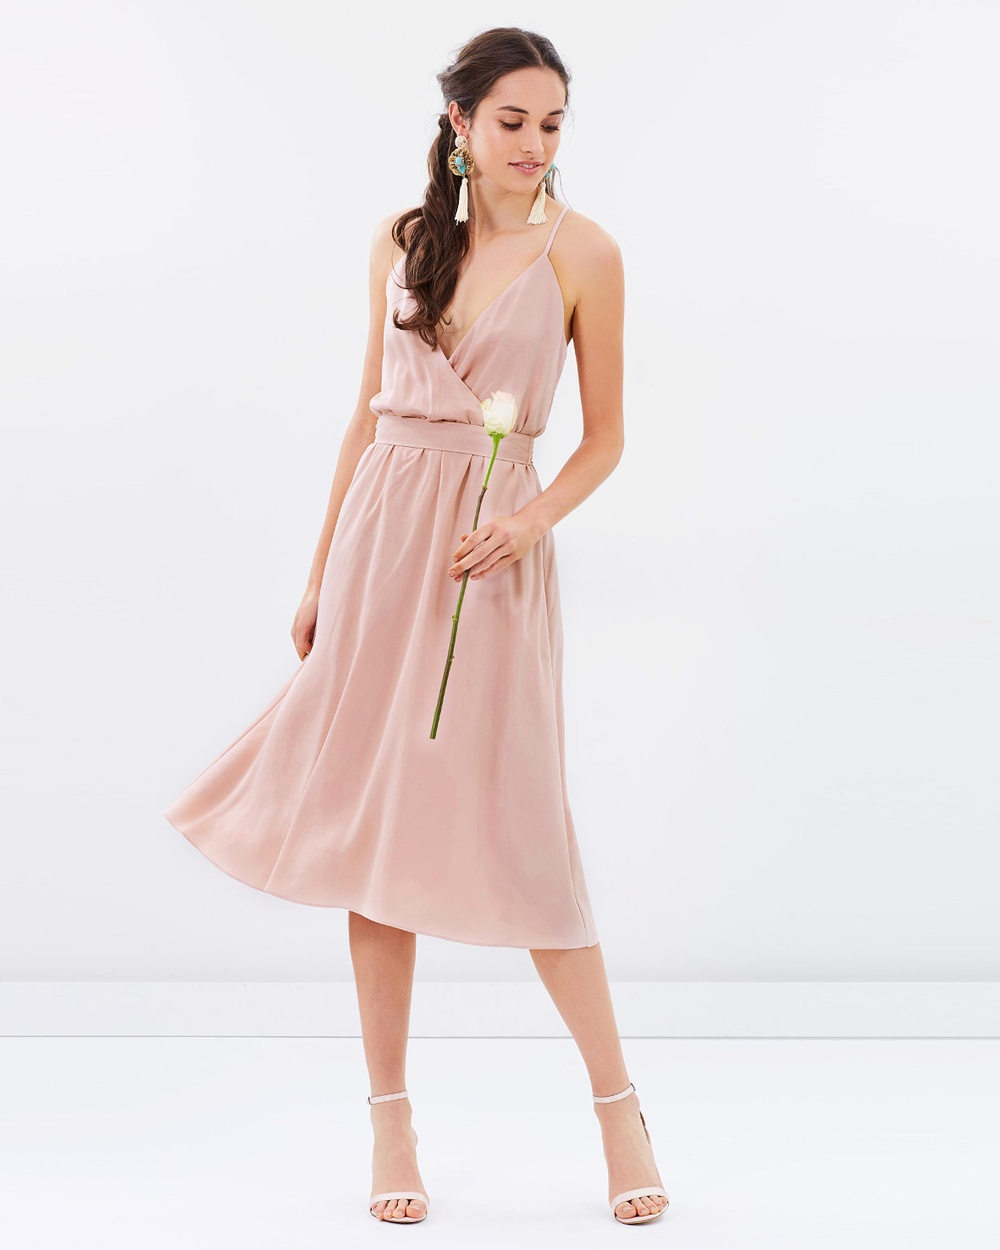 Atmos & Here ICONIC EXCLUSIVE Arabella Cross Back Dress Bridesmaid Dresses Nude Pink ICONIC EXCLUSIVE Arabella Cross Back Dress